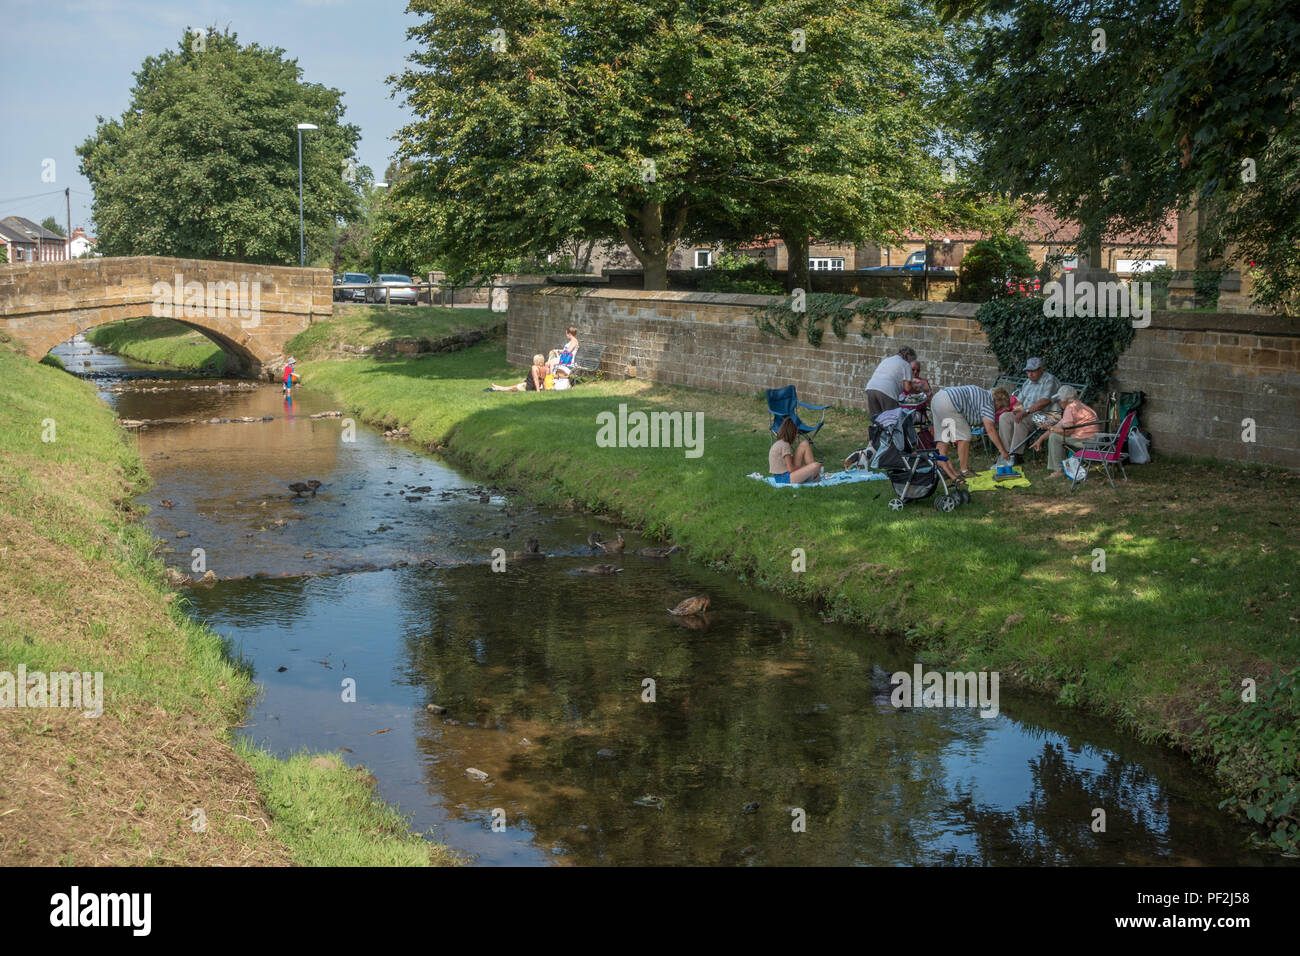 Whole families enjoy picnics in shady places, Crook Beck in Swainby, North Yorkshire Moors - Stock Image